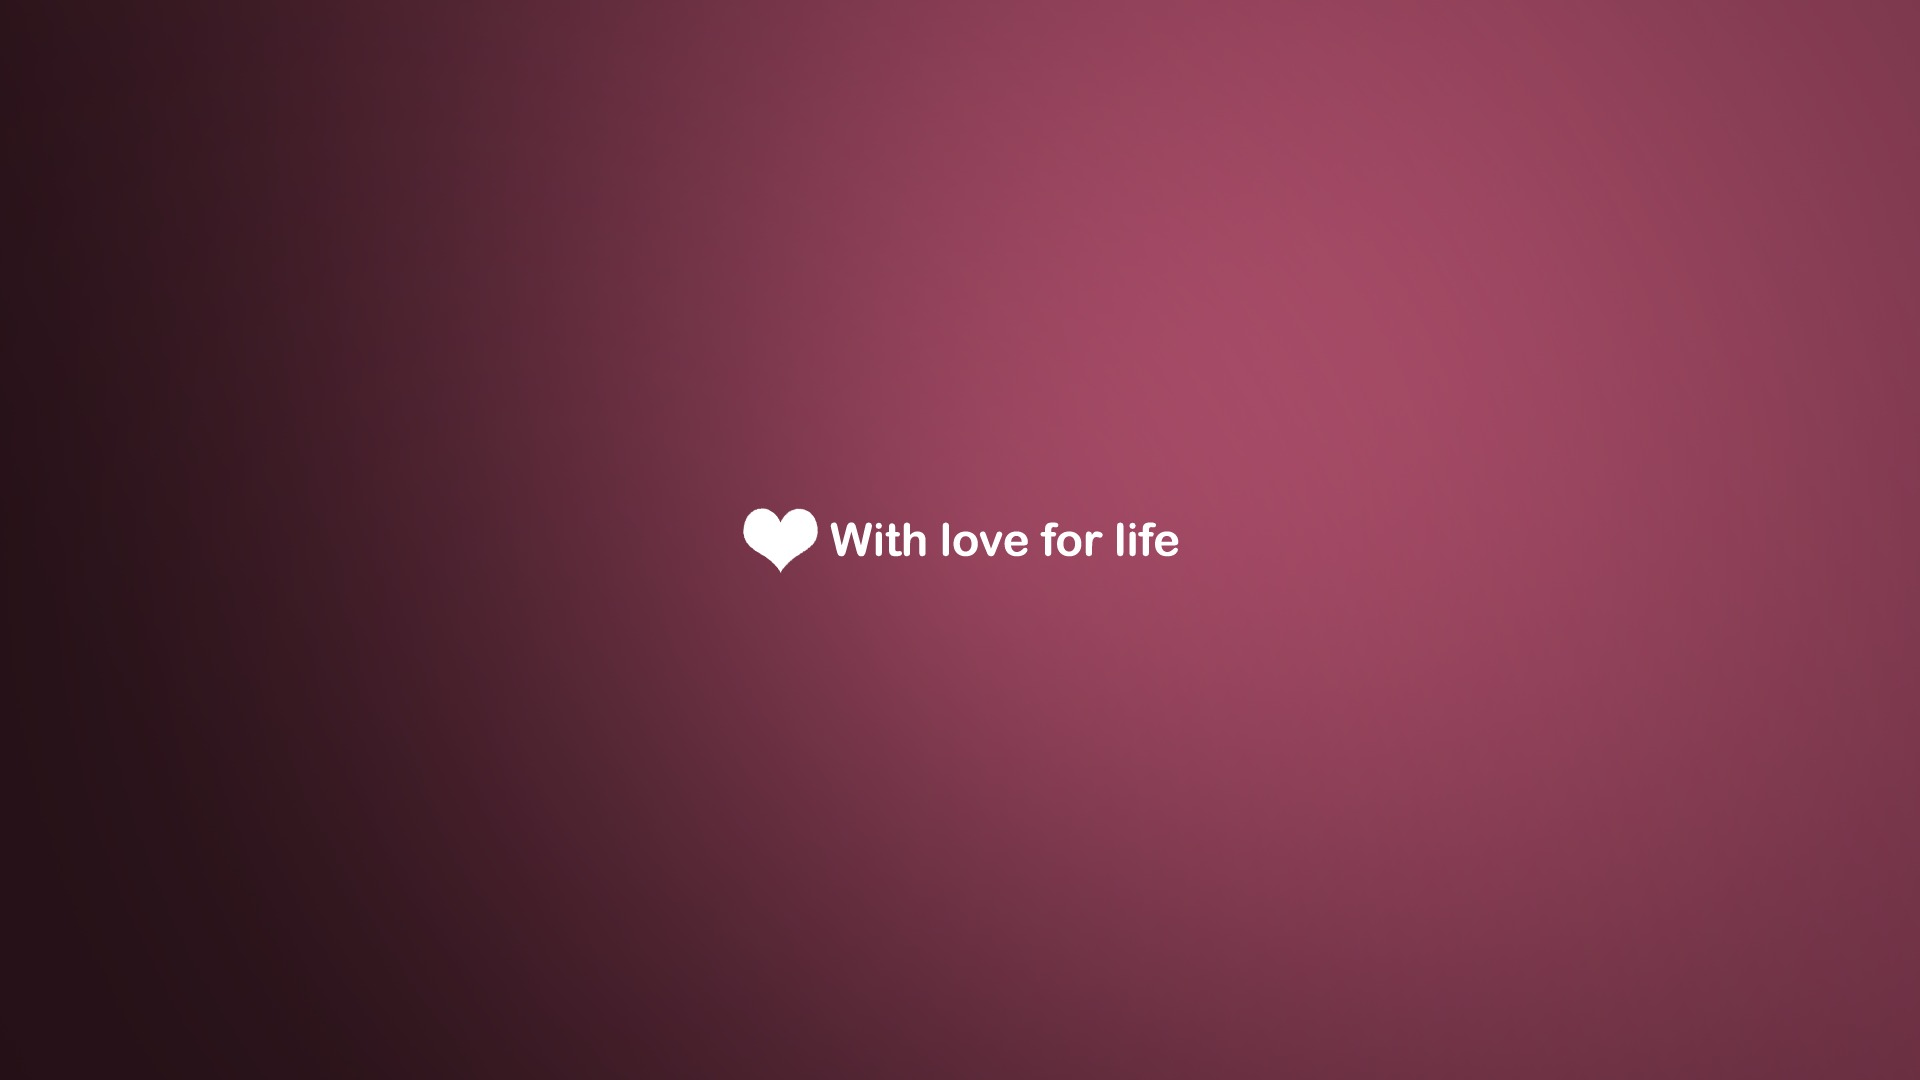 Love Wallpaper Pink Heart HD